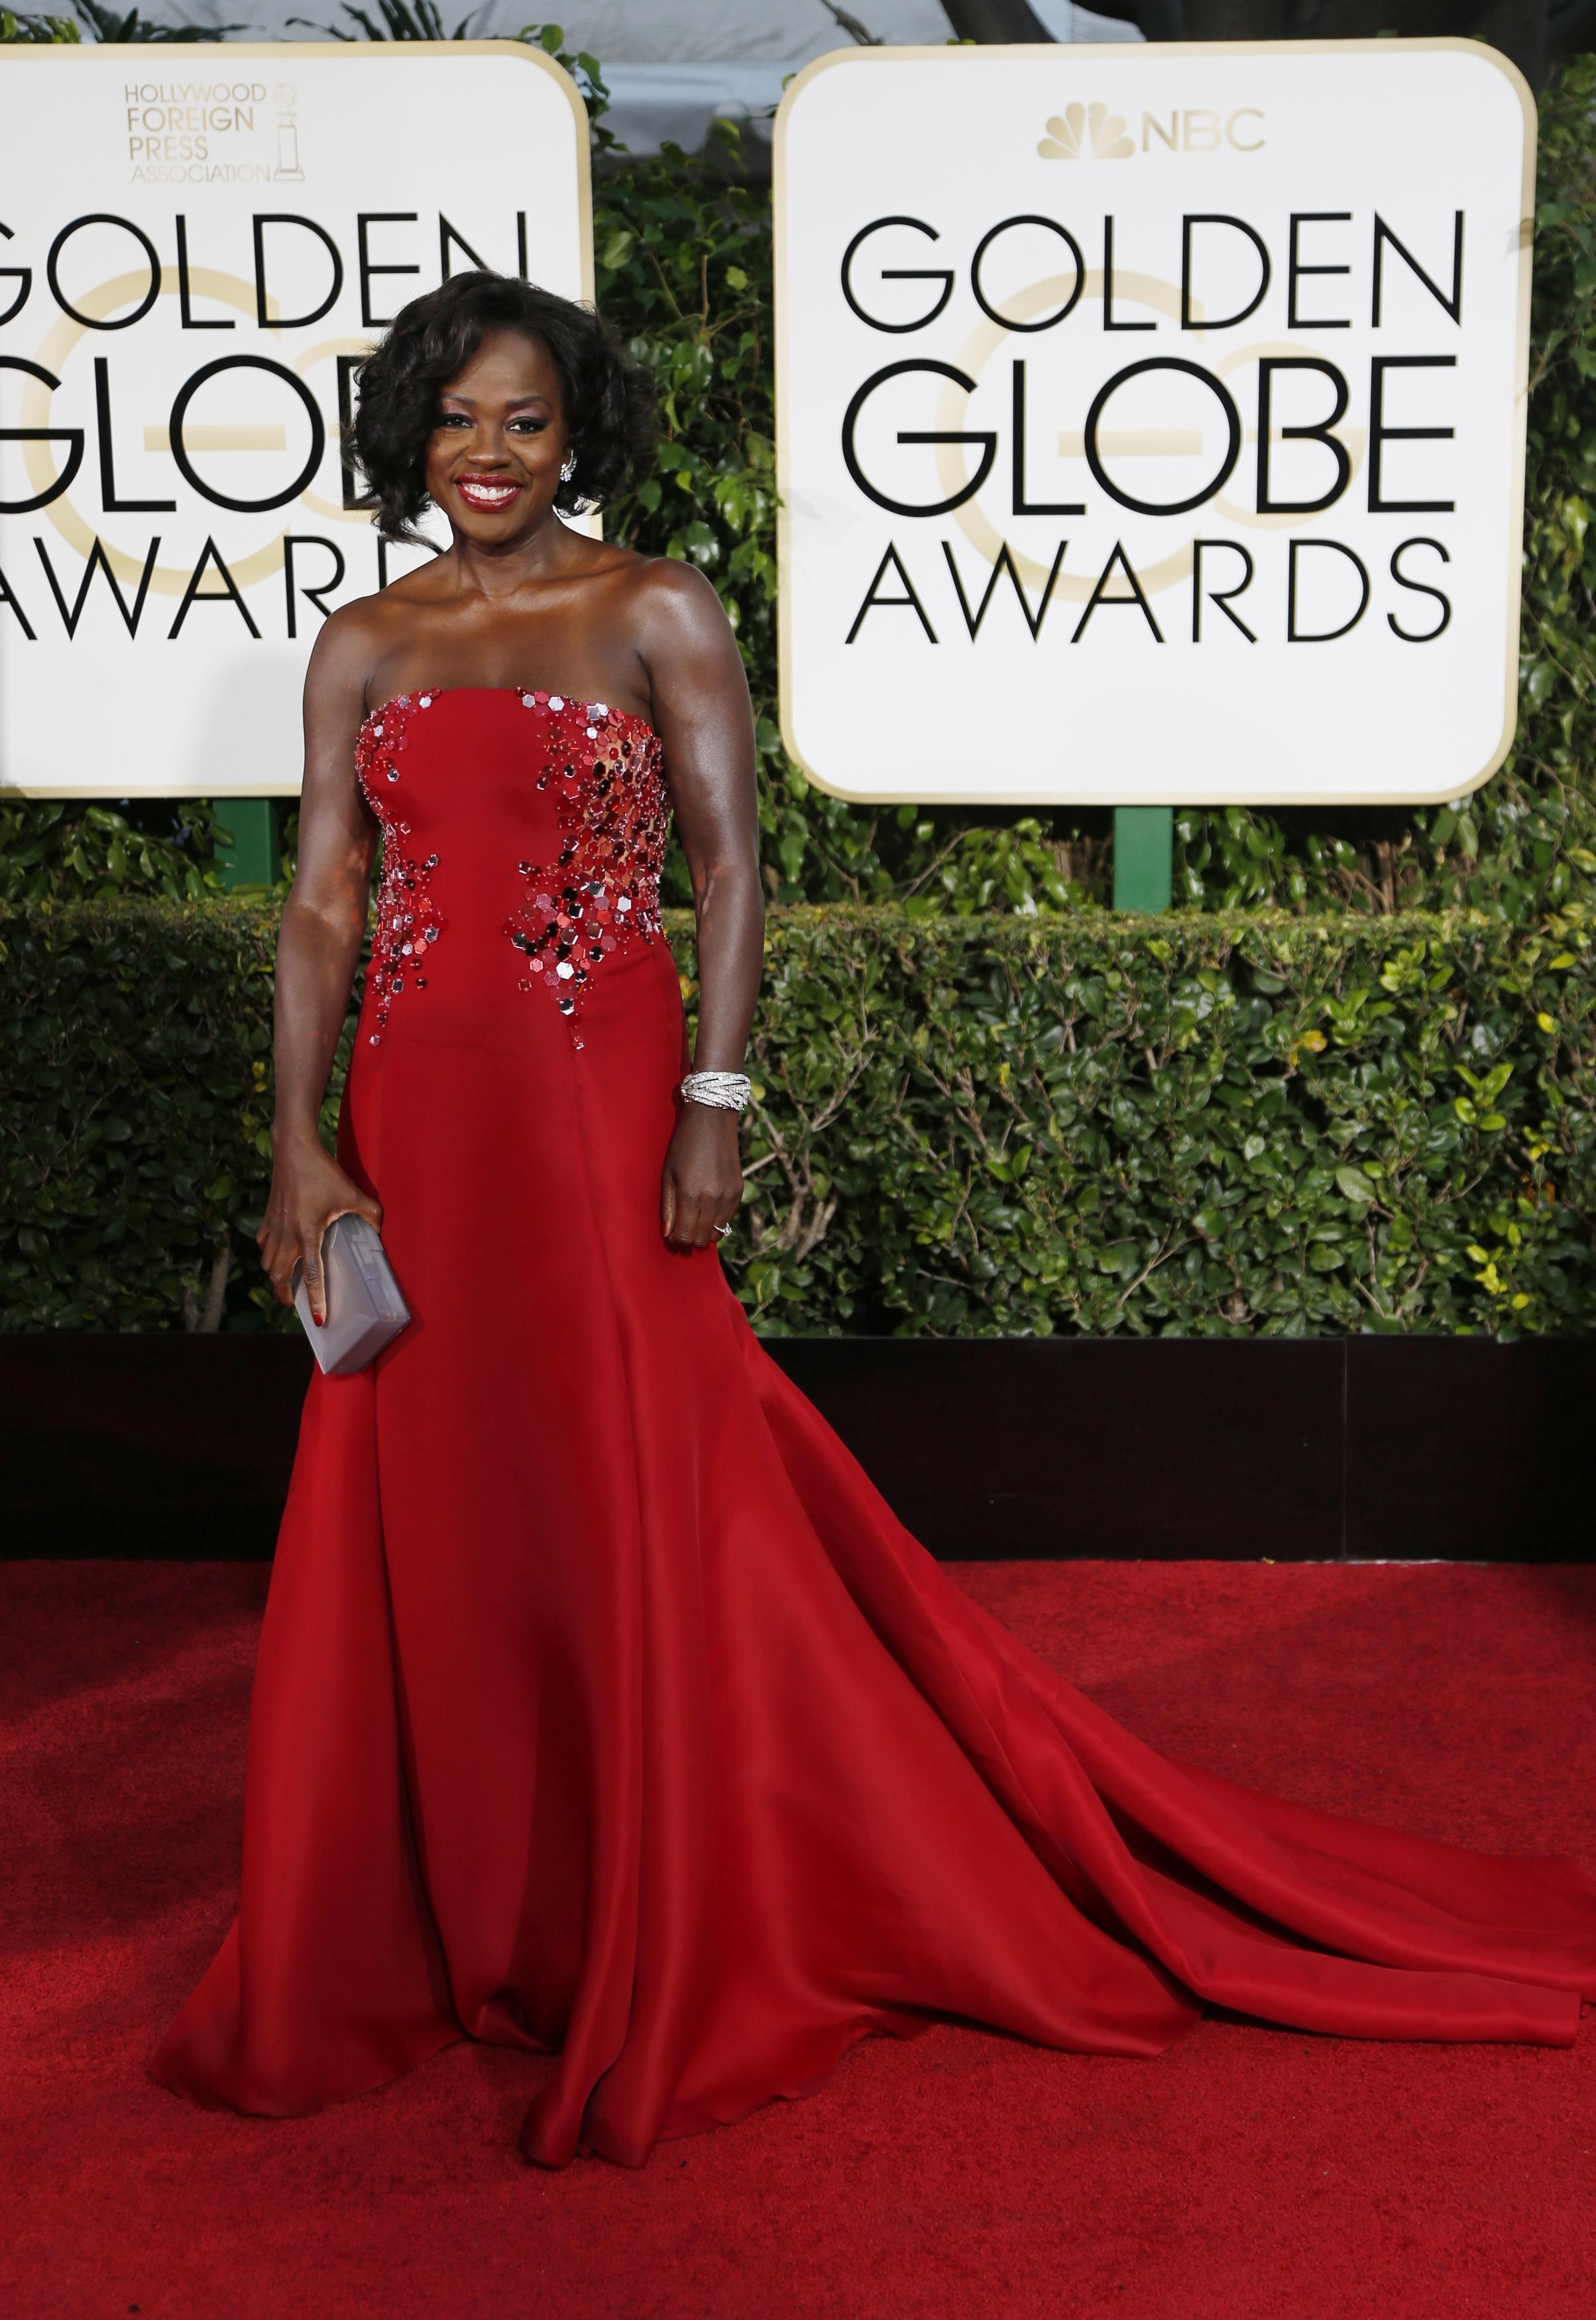 Golden Globes 2015 Red Carpet Trends From Bold Red Looks